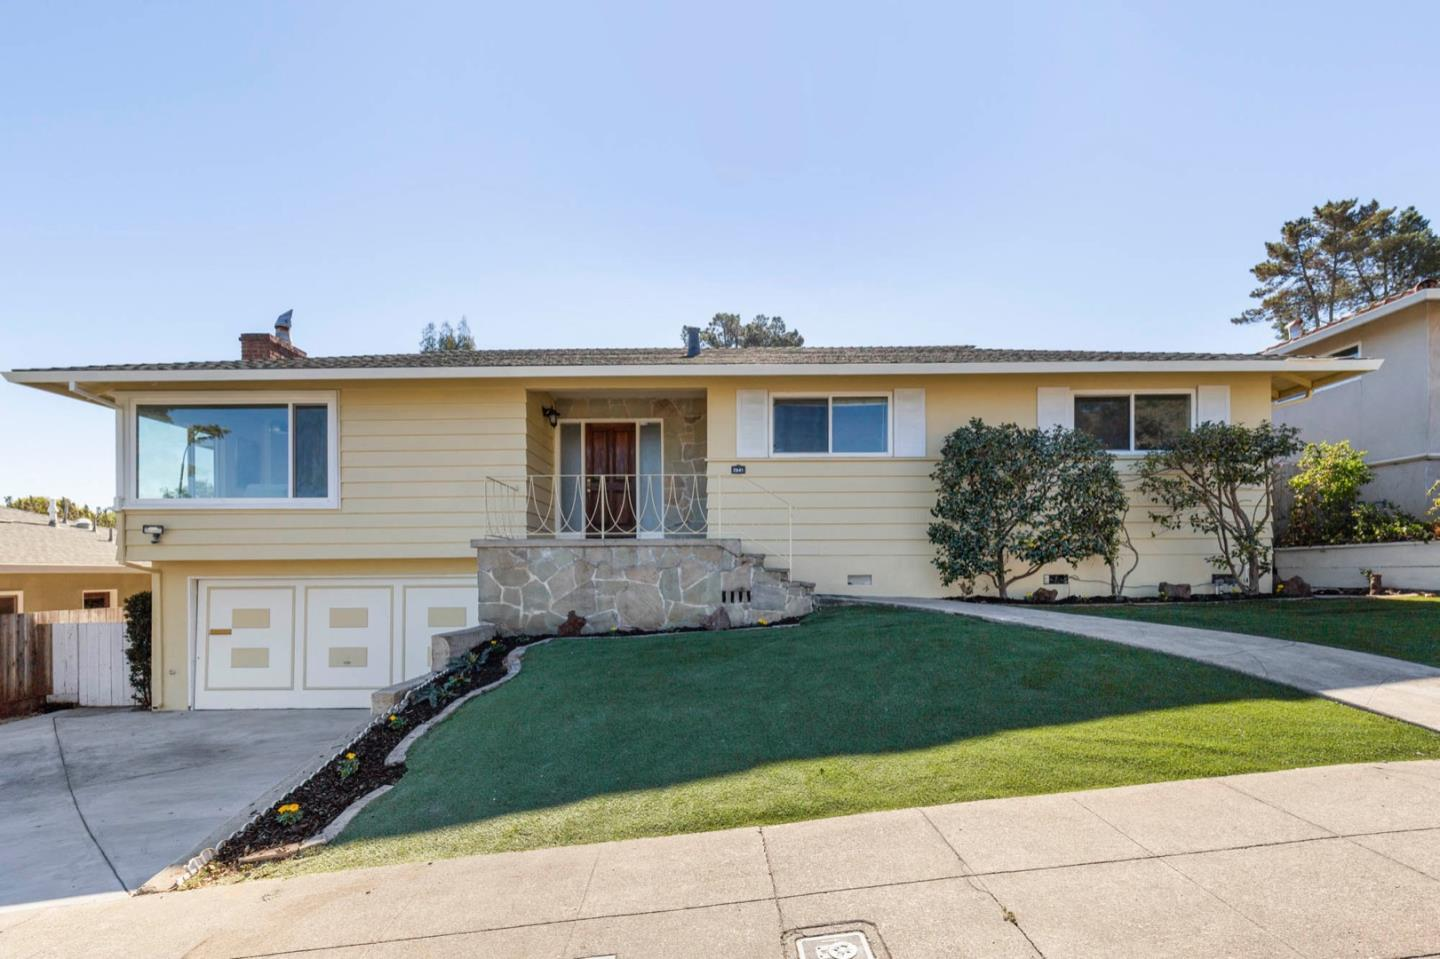 Updated charming 2-story home situated in the desirable Mills Estate neighborhood with dramatic bay views. 3 BR + Office. Spacious and flat backyard. Easy access to I-280 and 101 freeways. Short driving distance to the many shops and restaurants of both downtown Millbrae and Burlingame.